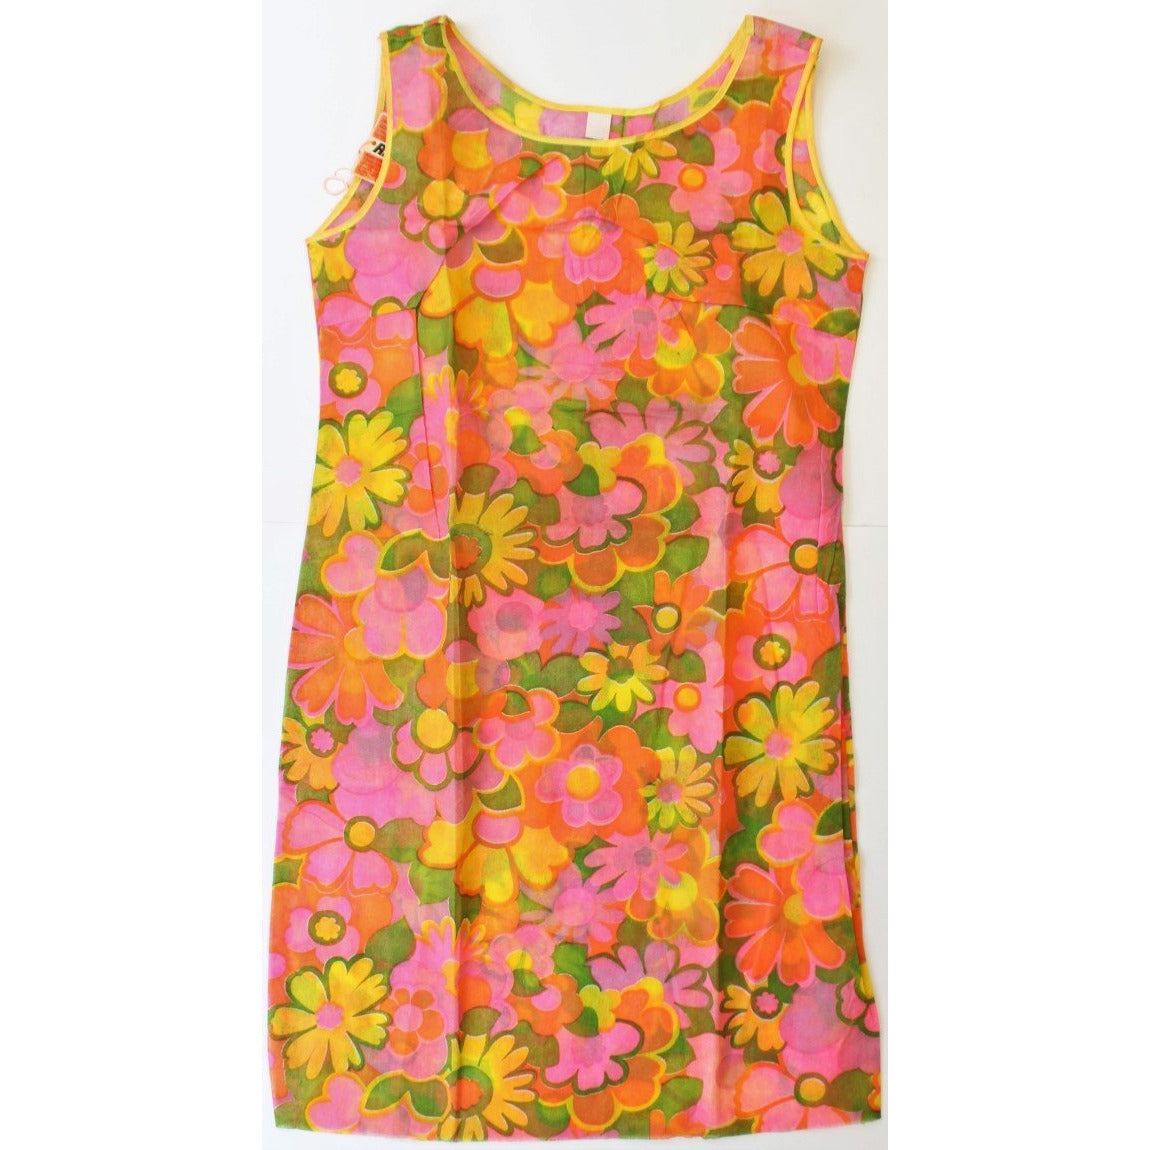 Hot Pink/Orange & Yellow Floral Poly Tissue Sundress Sz. Sm